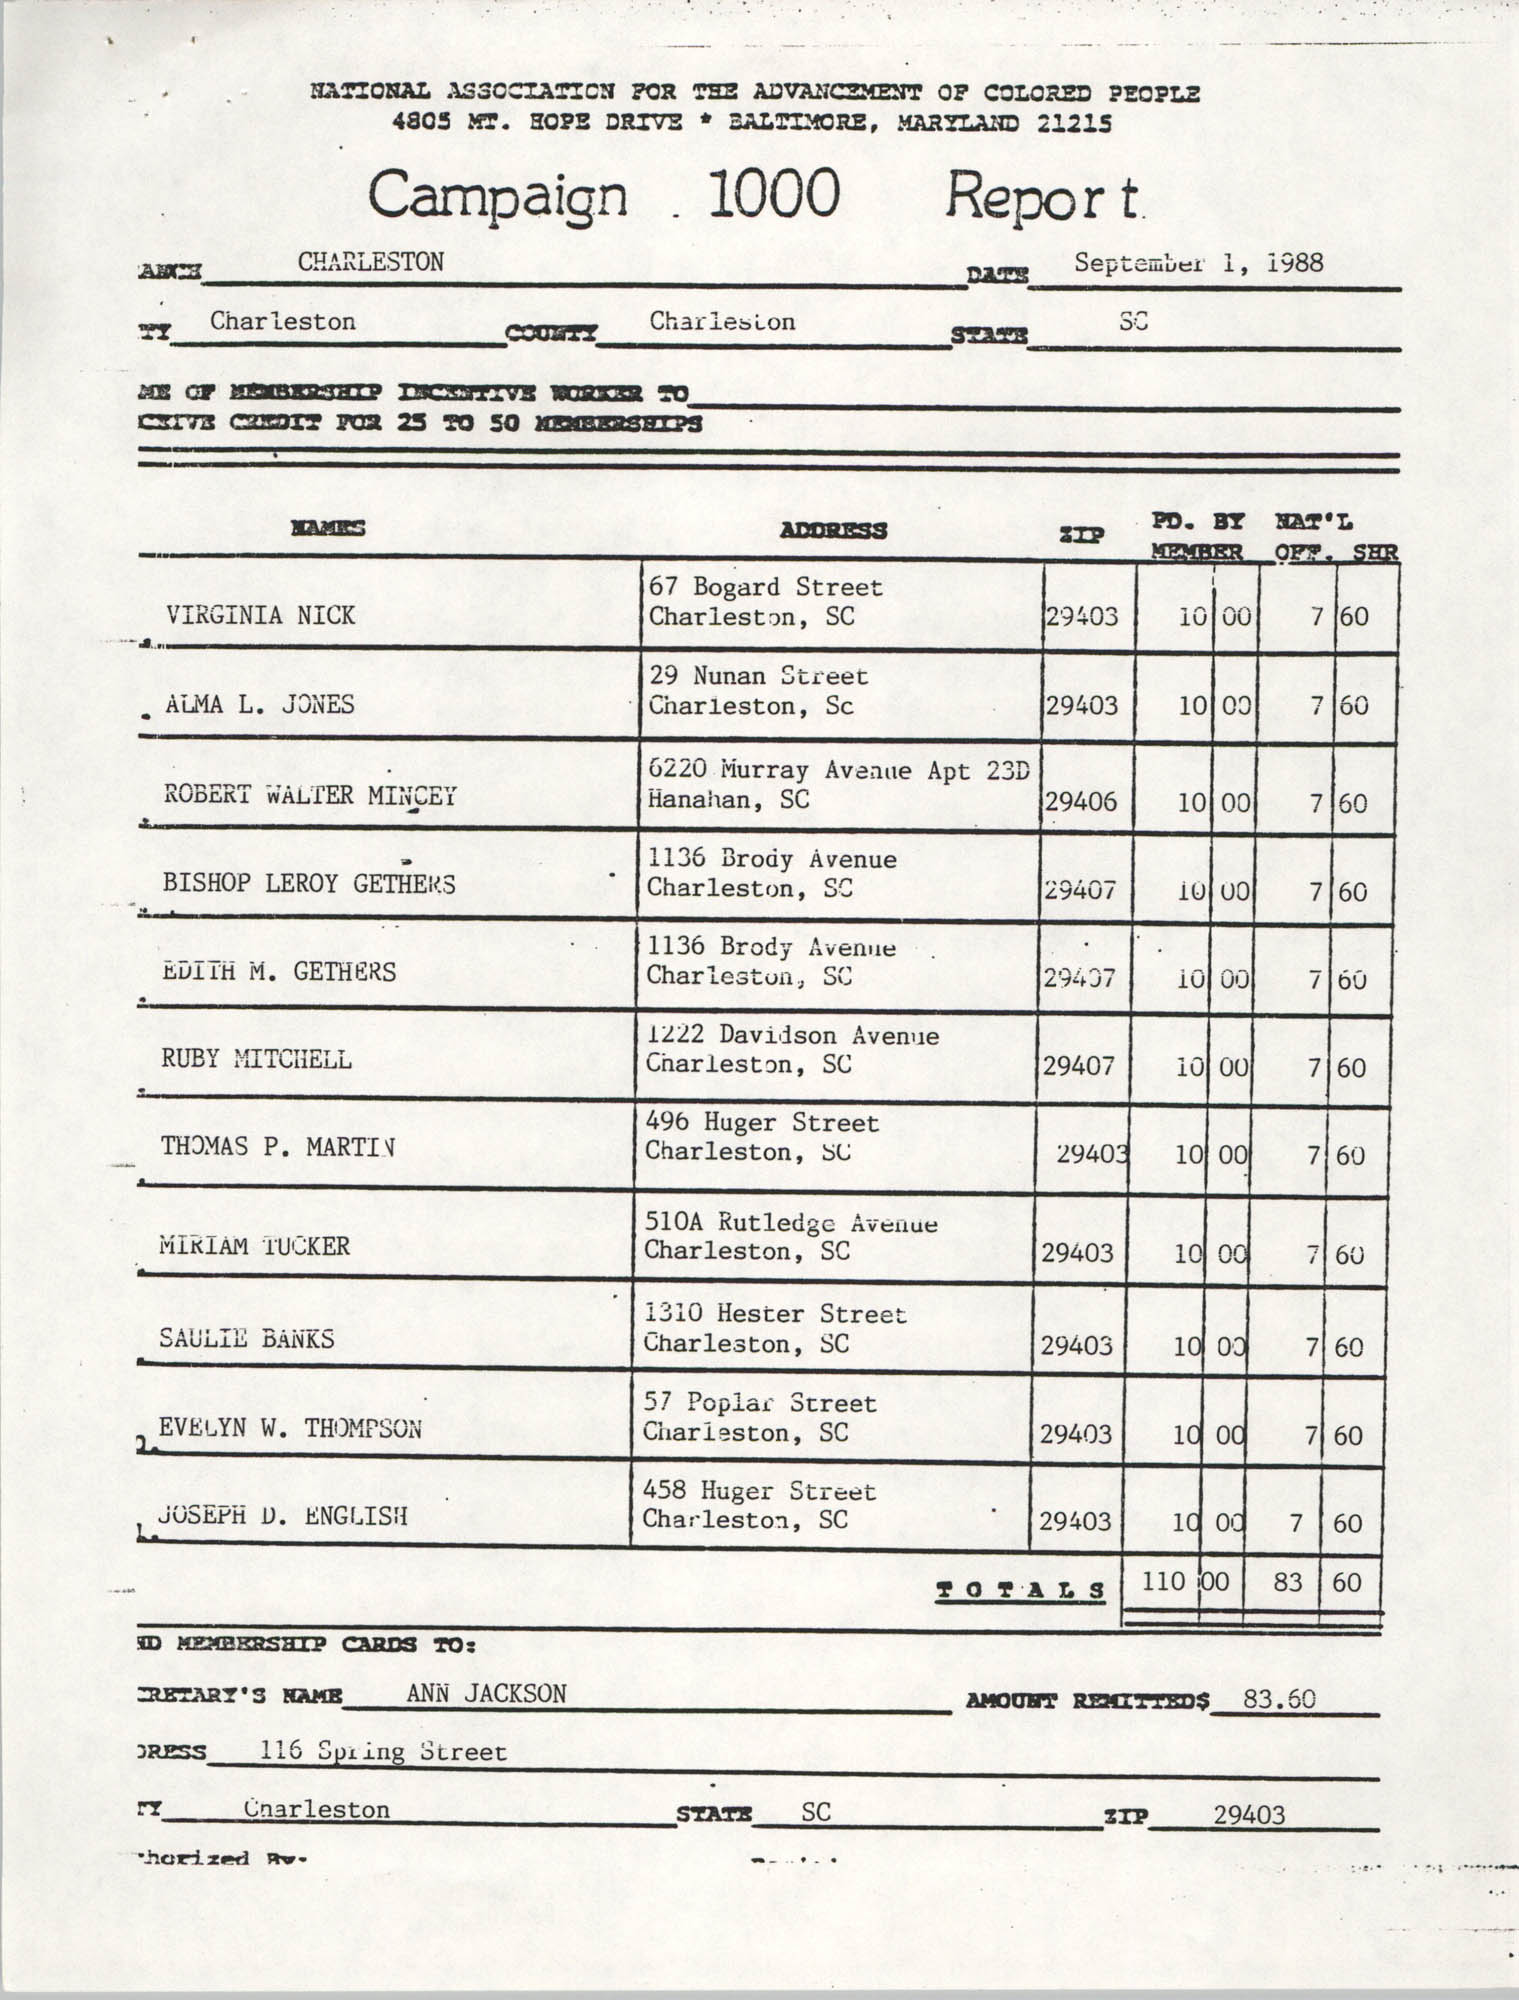 Campaign 1000 Report, Charleston Branch of the NAACP, September 1, 1988